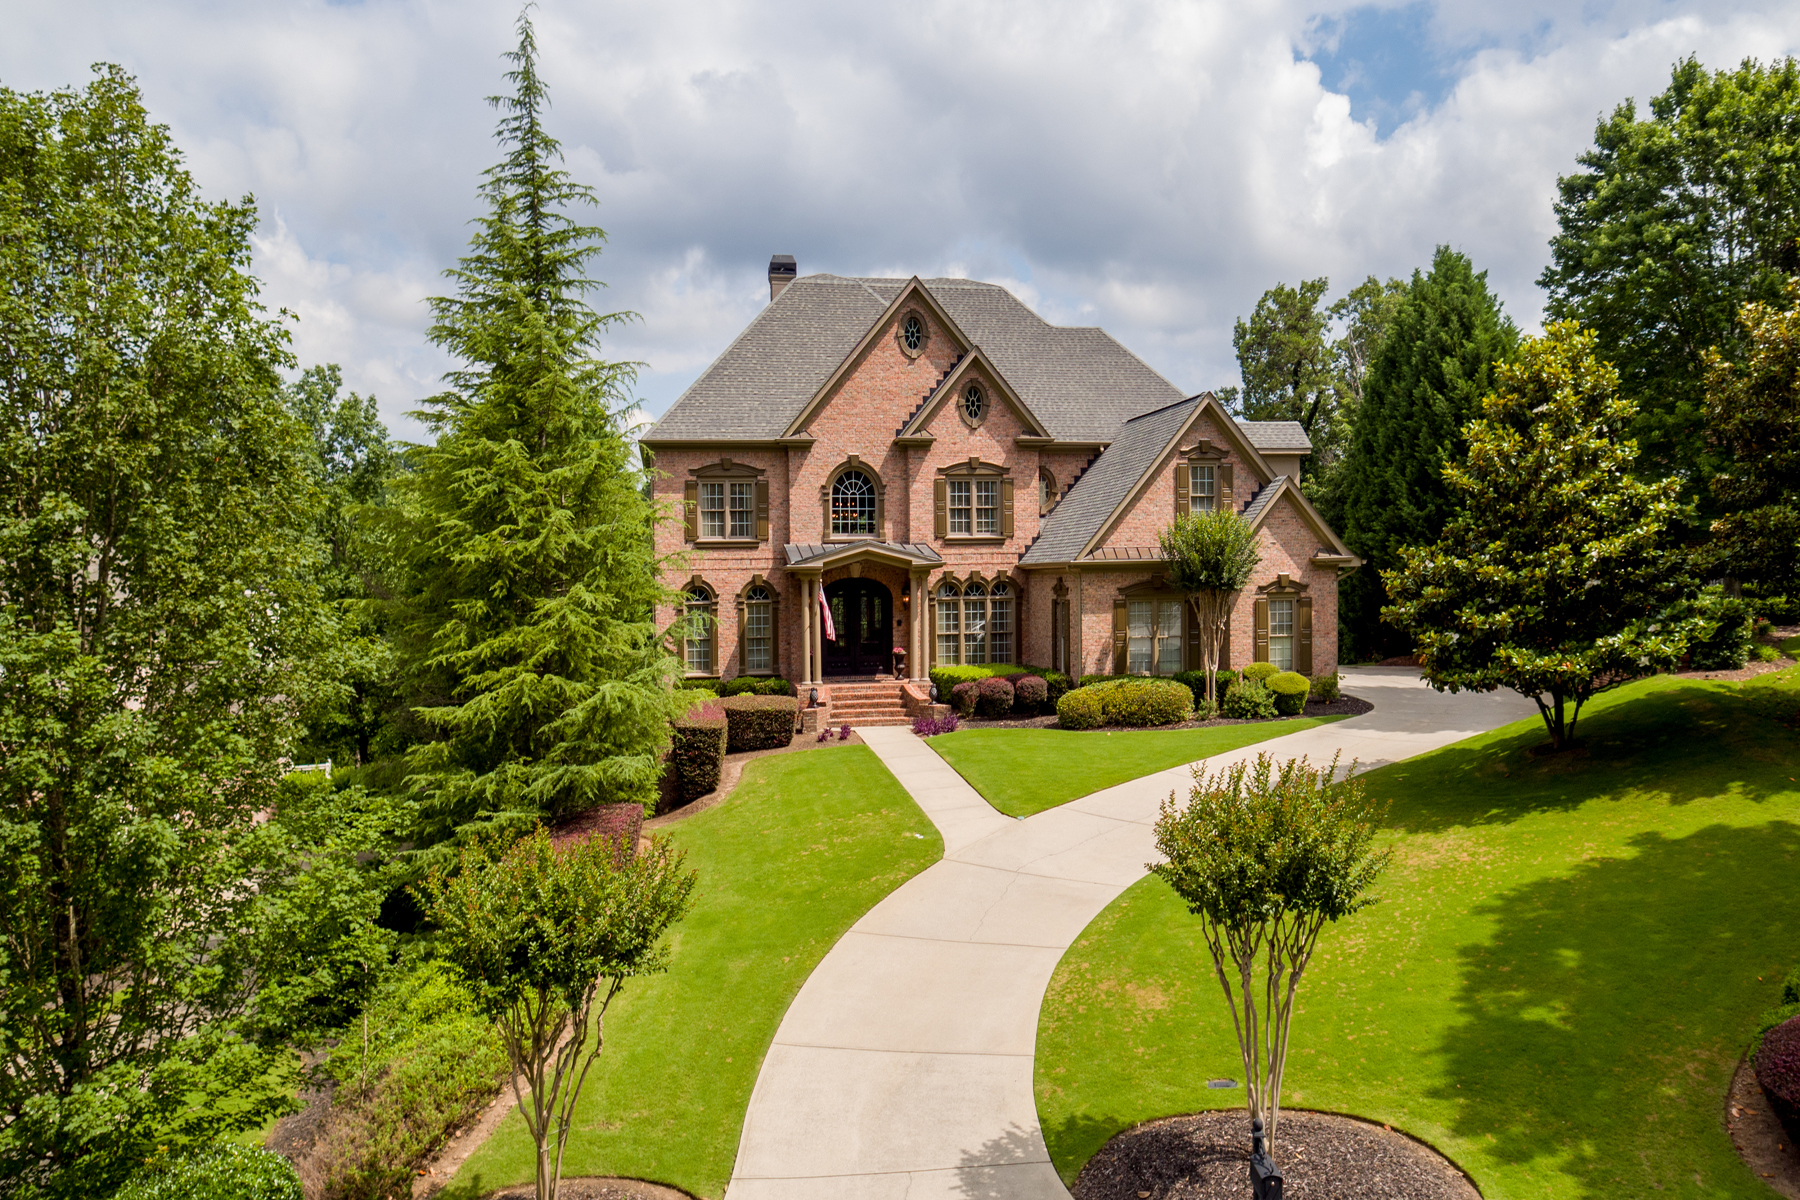 Single Family Home for Sale at Exceptional Poolside Retreat With Golf Views 10210 Brixton Place Suwanee, Georgia 30024 United States